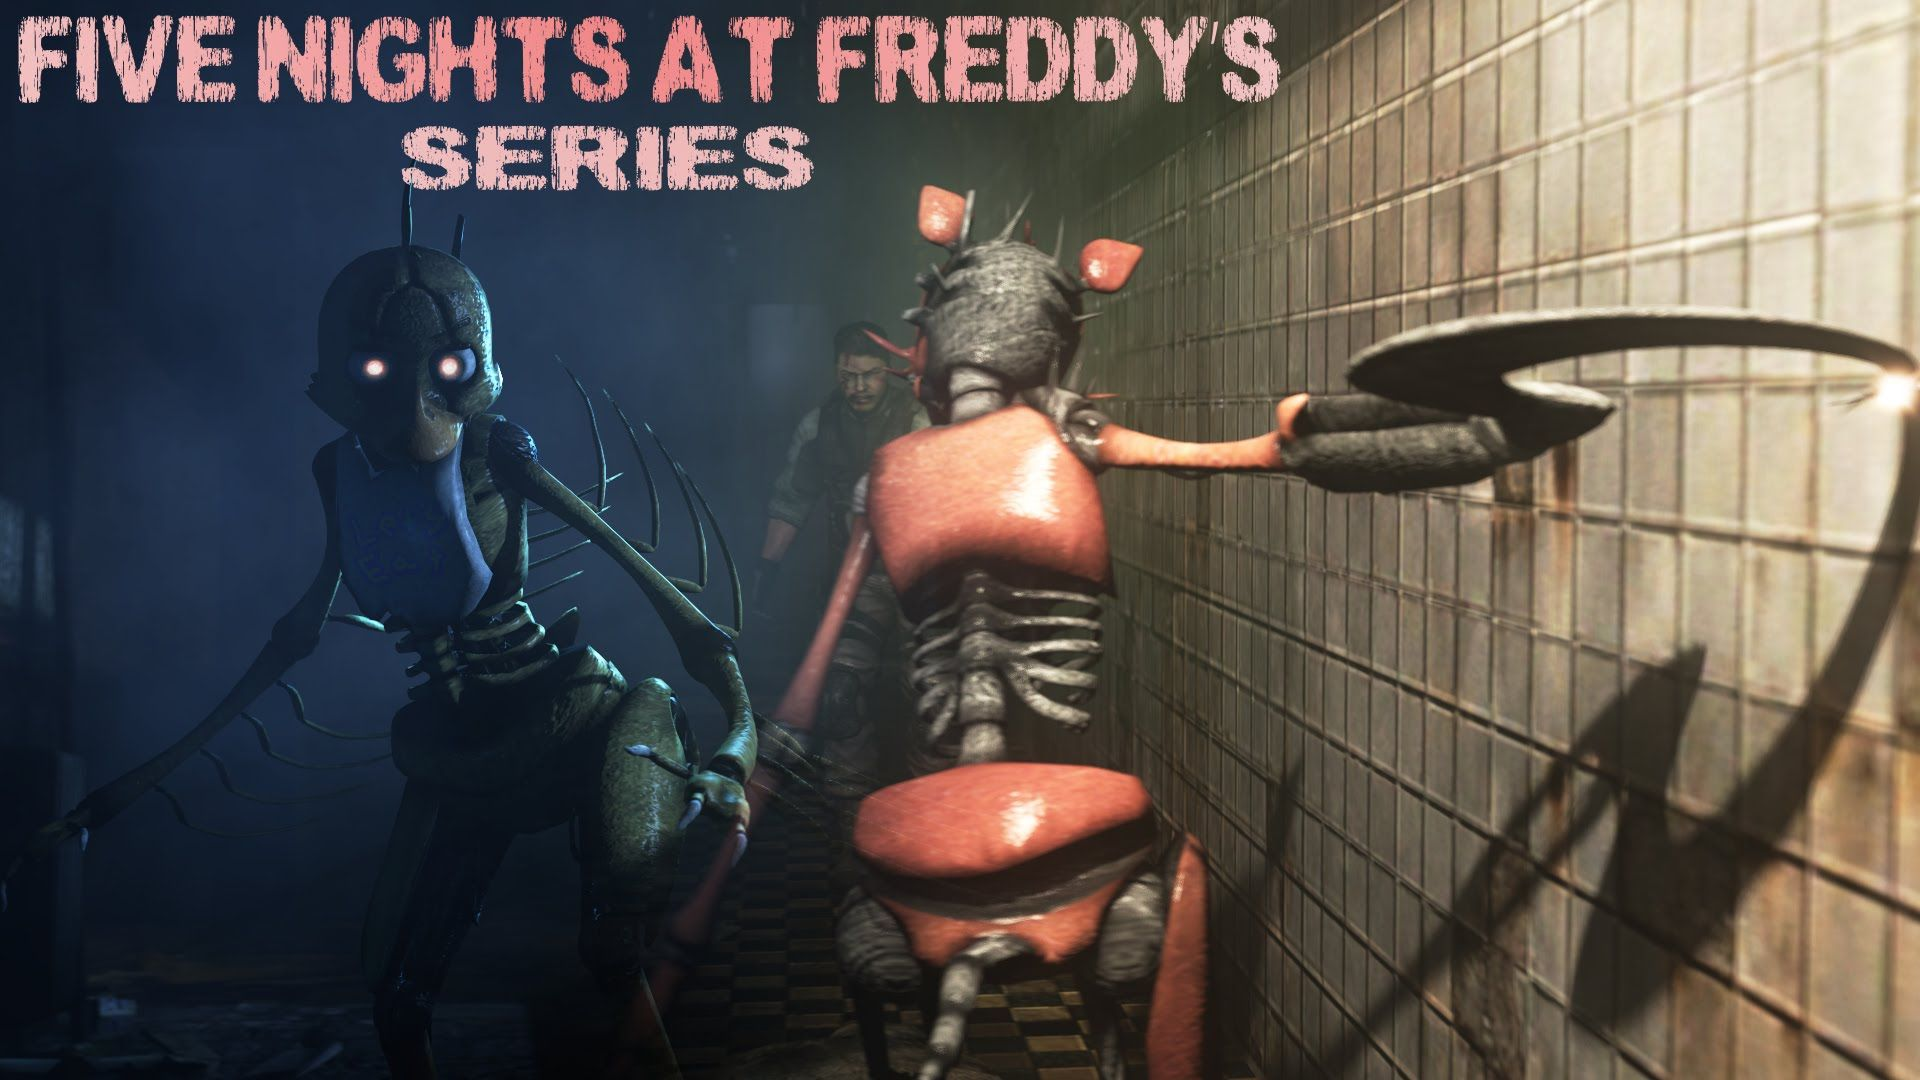 [Sfm] Five Nights At Freddys Series (Trailer)